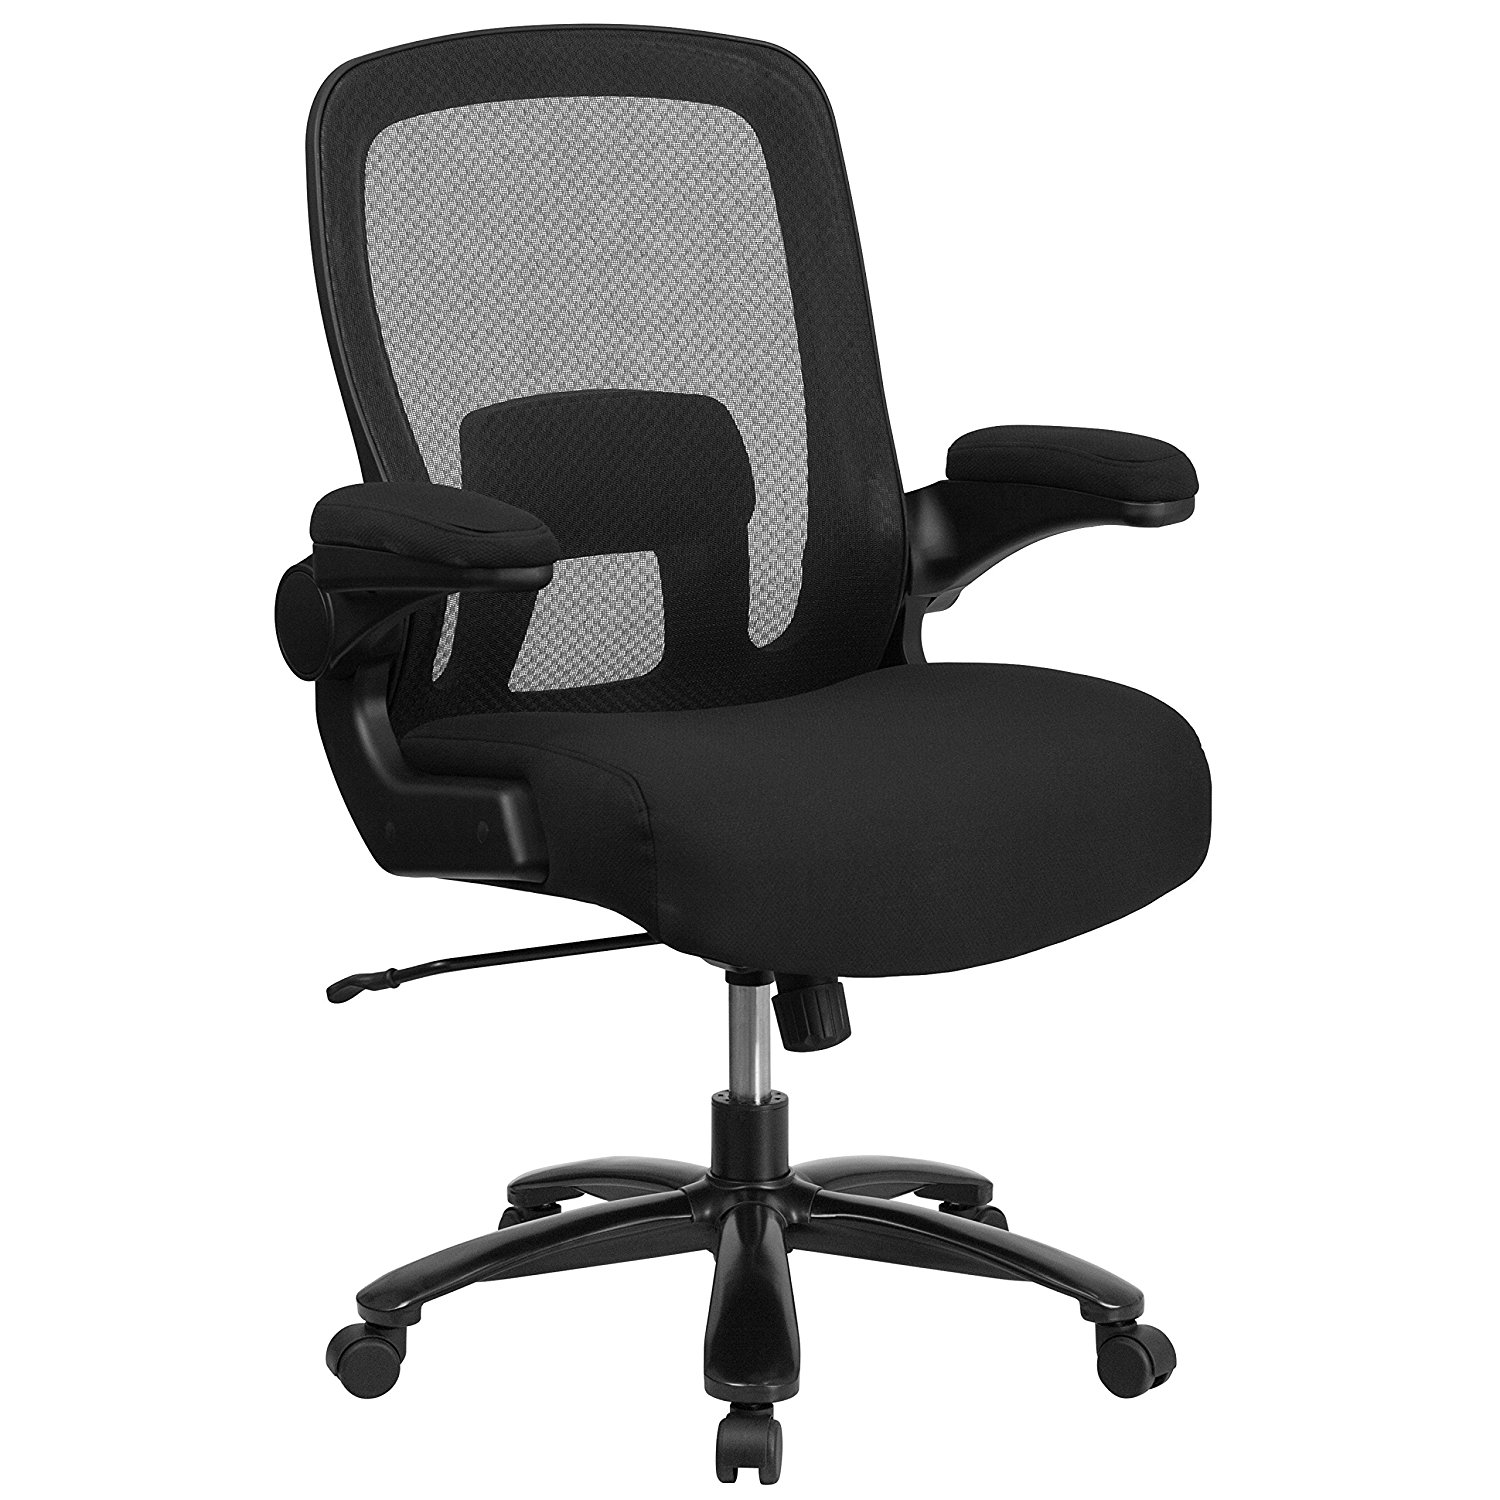 Top 10 Heavy Duty Office Chairs For